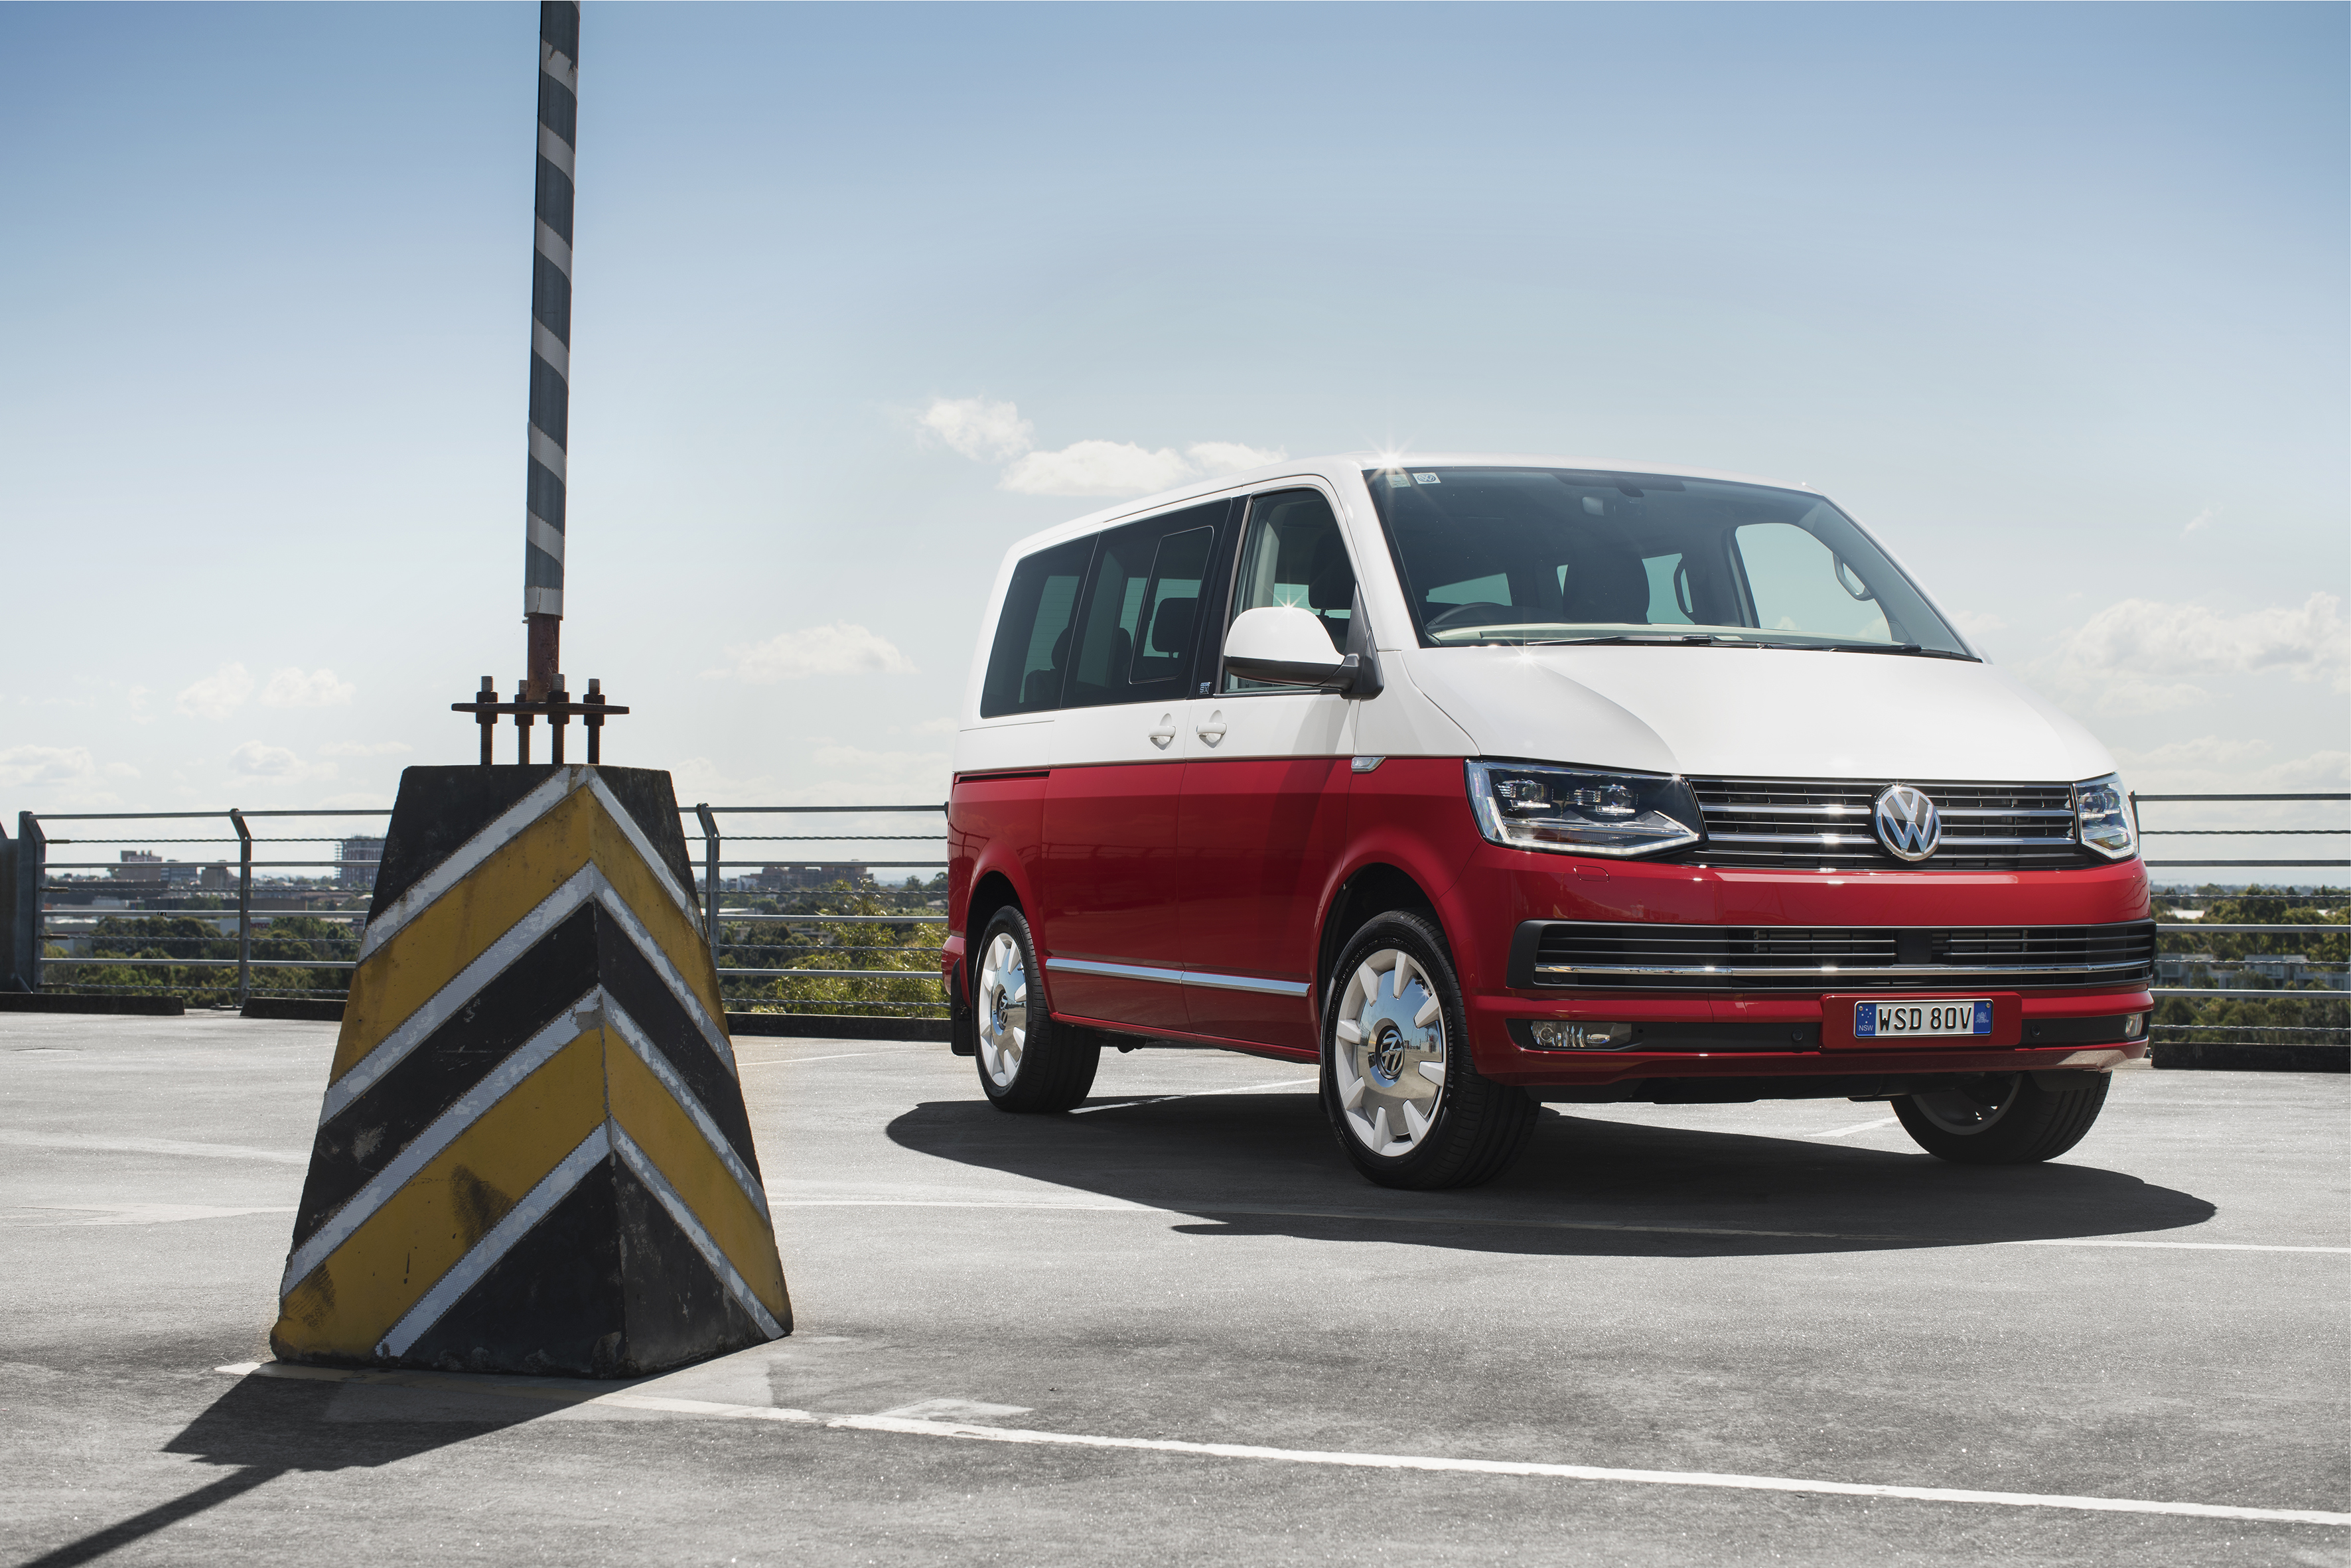 2016 Volkswagen Multivan and Caravelle people-movers ...